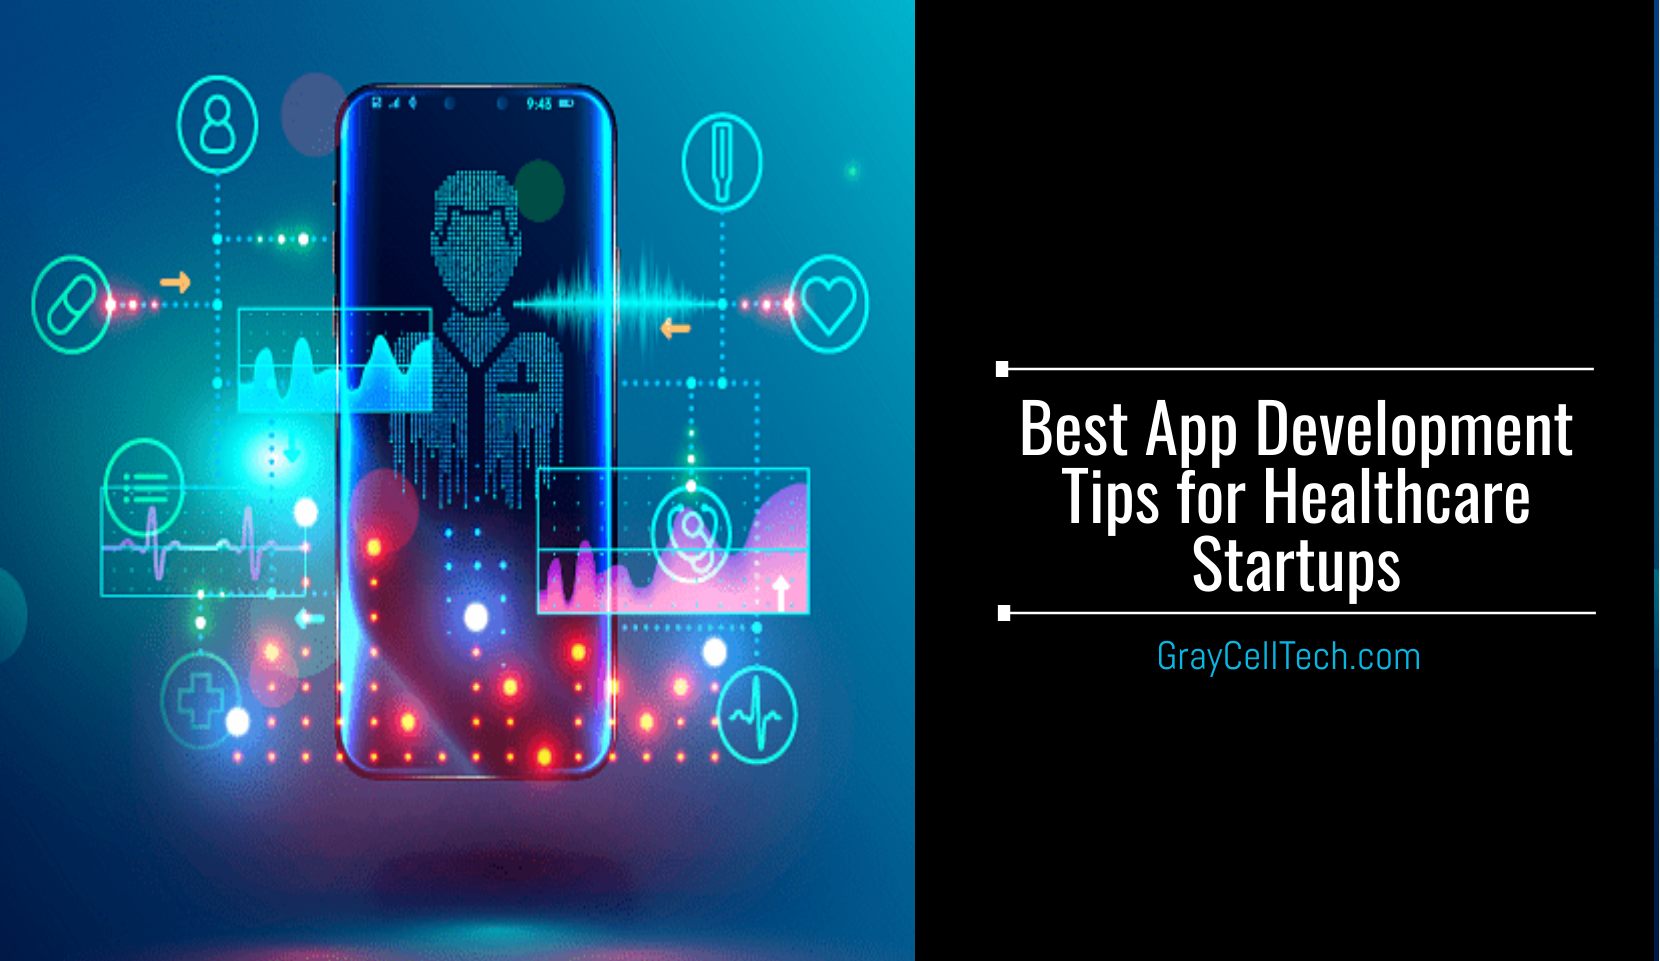 Best App Development Tips for Healthcare Startups